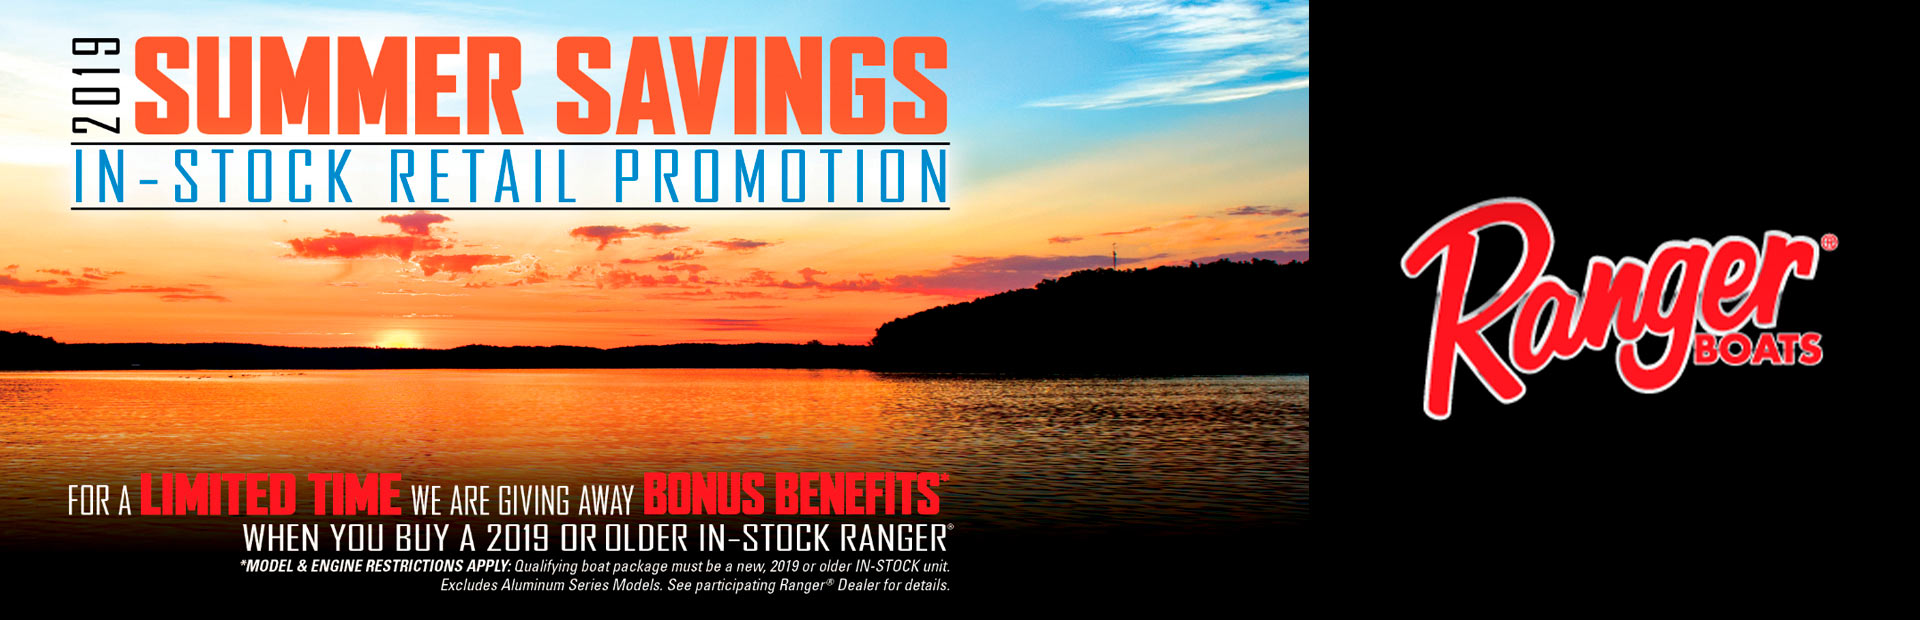 Ranger: 2019 SUMMER SAVINGS